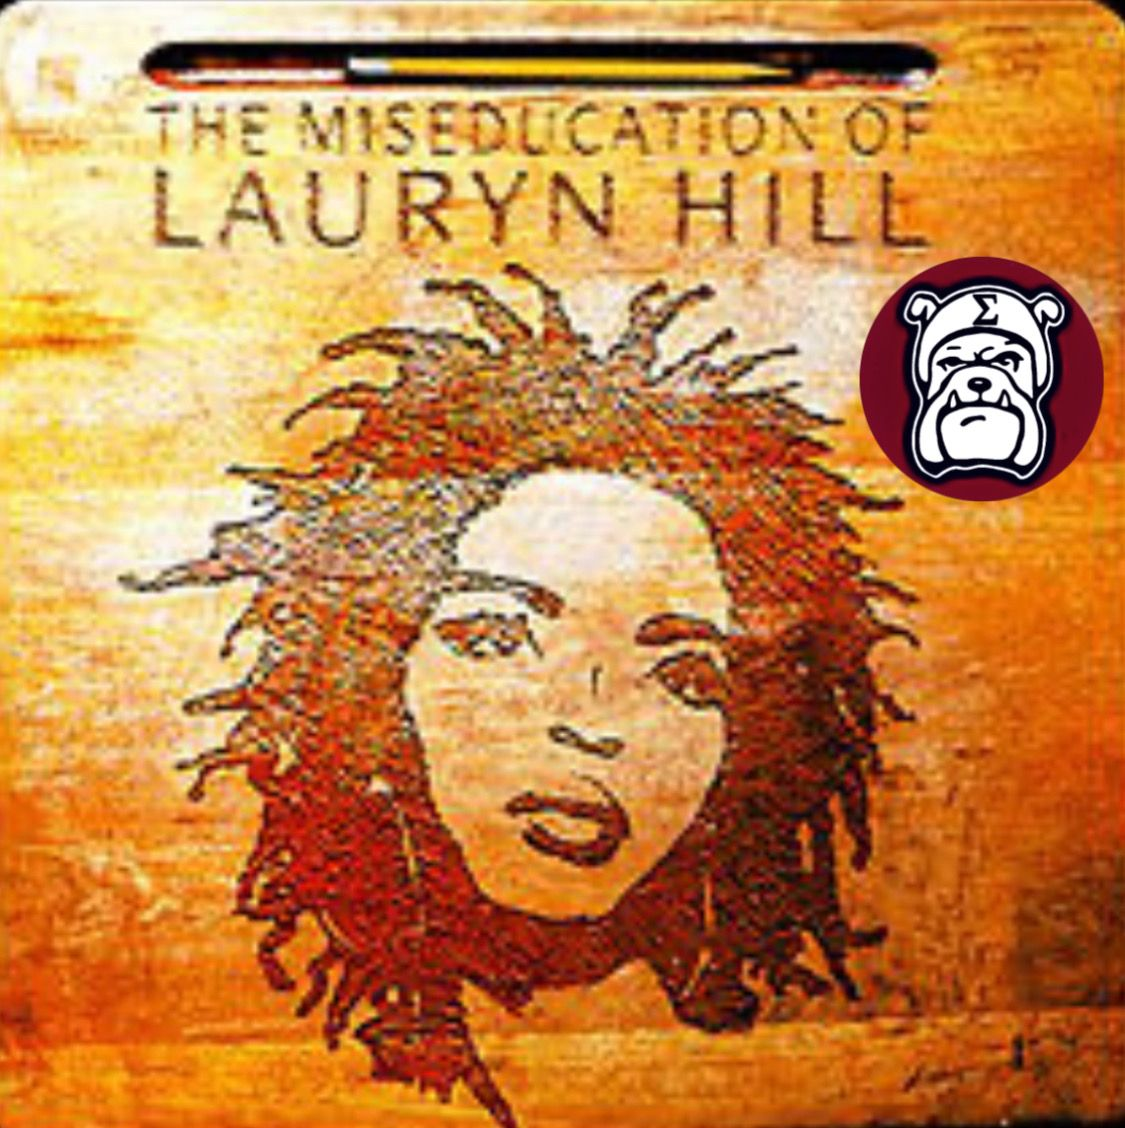 Pin by Dickie on Dickie's Music in 2020 Miseducation of